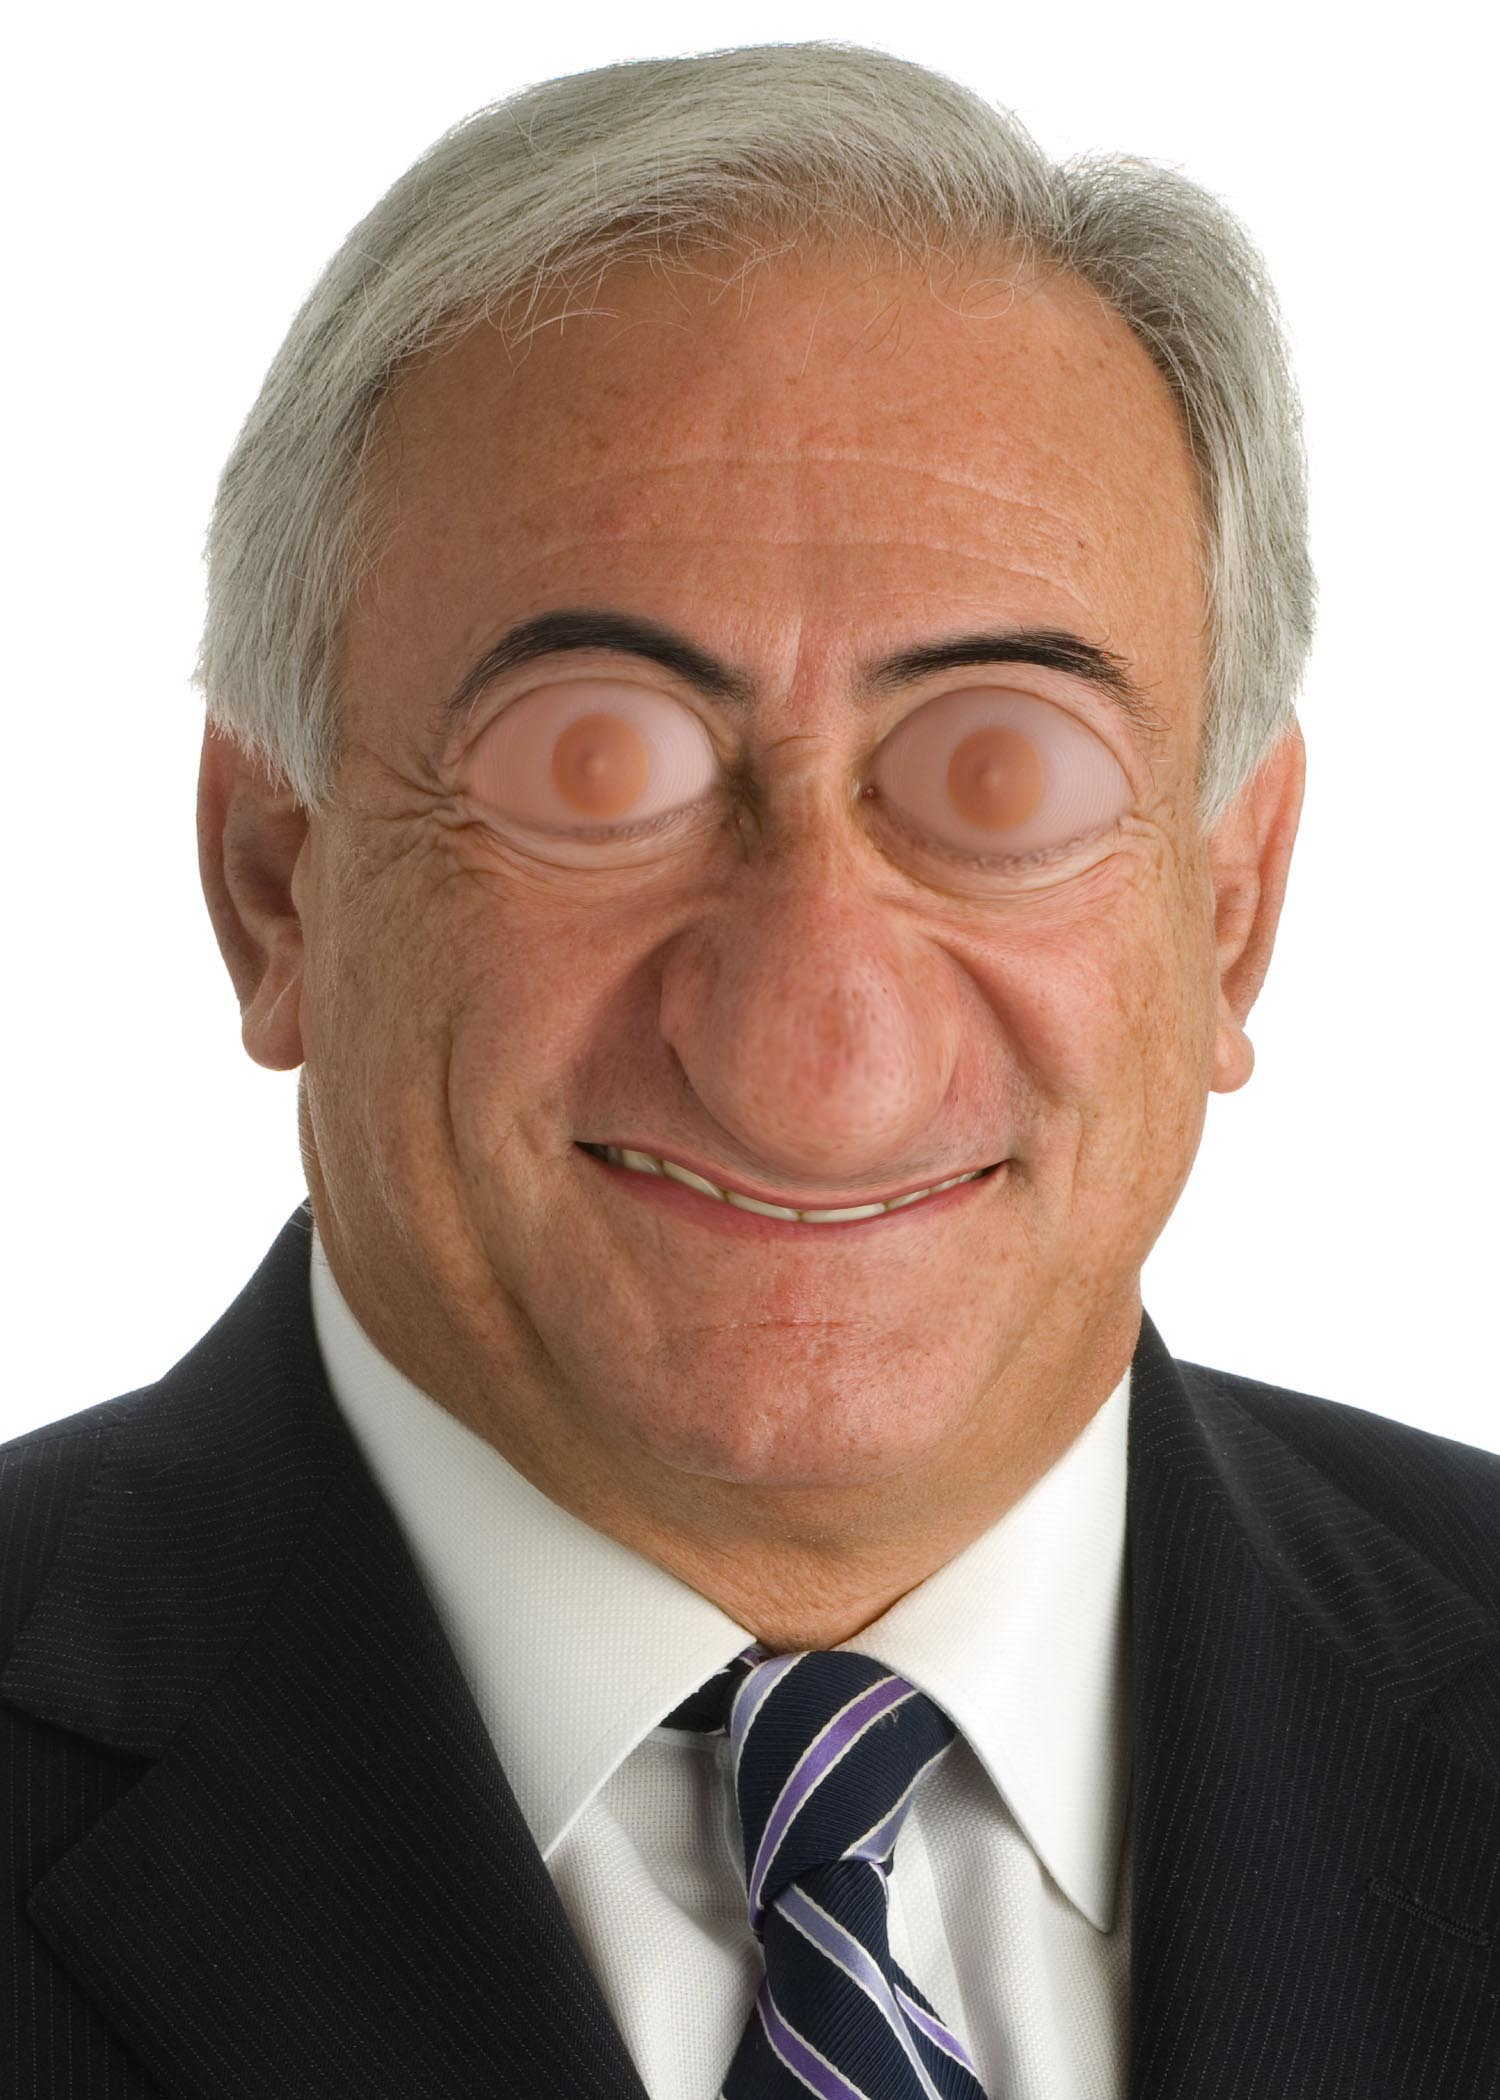 Blick fürs das Wesentliche<br /><small>Quelle: https://secure.wikimedia.org/wikipedia/commons/wiki/File:Strauss-Kahn,_Dominique_%28official_portrait_2008%29.jpg</small>